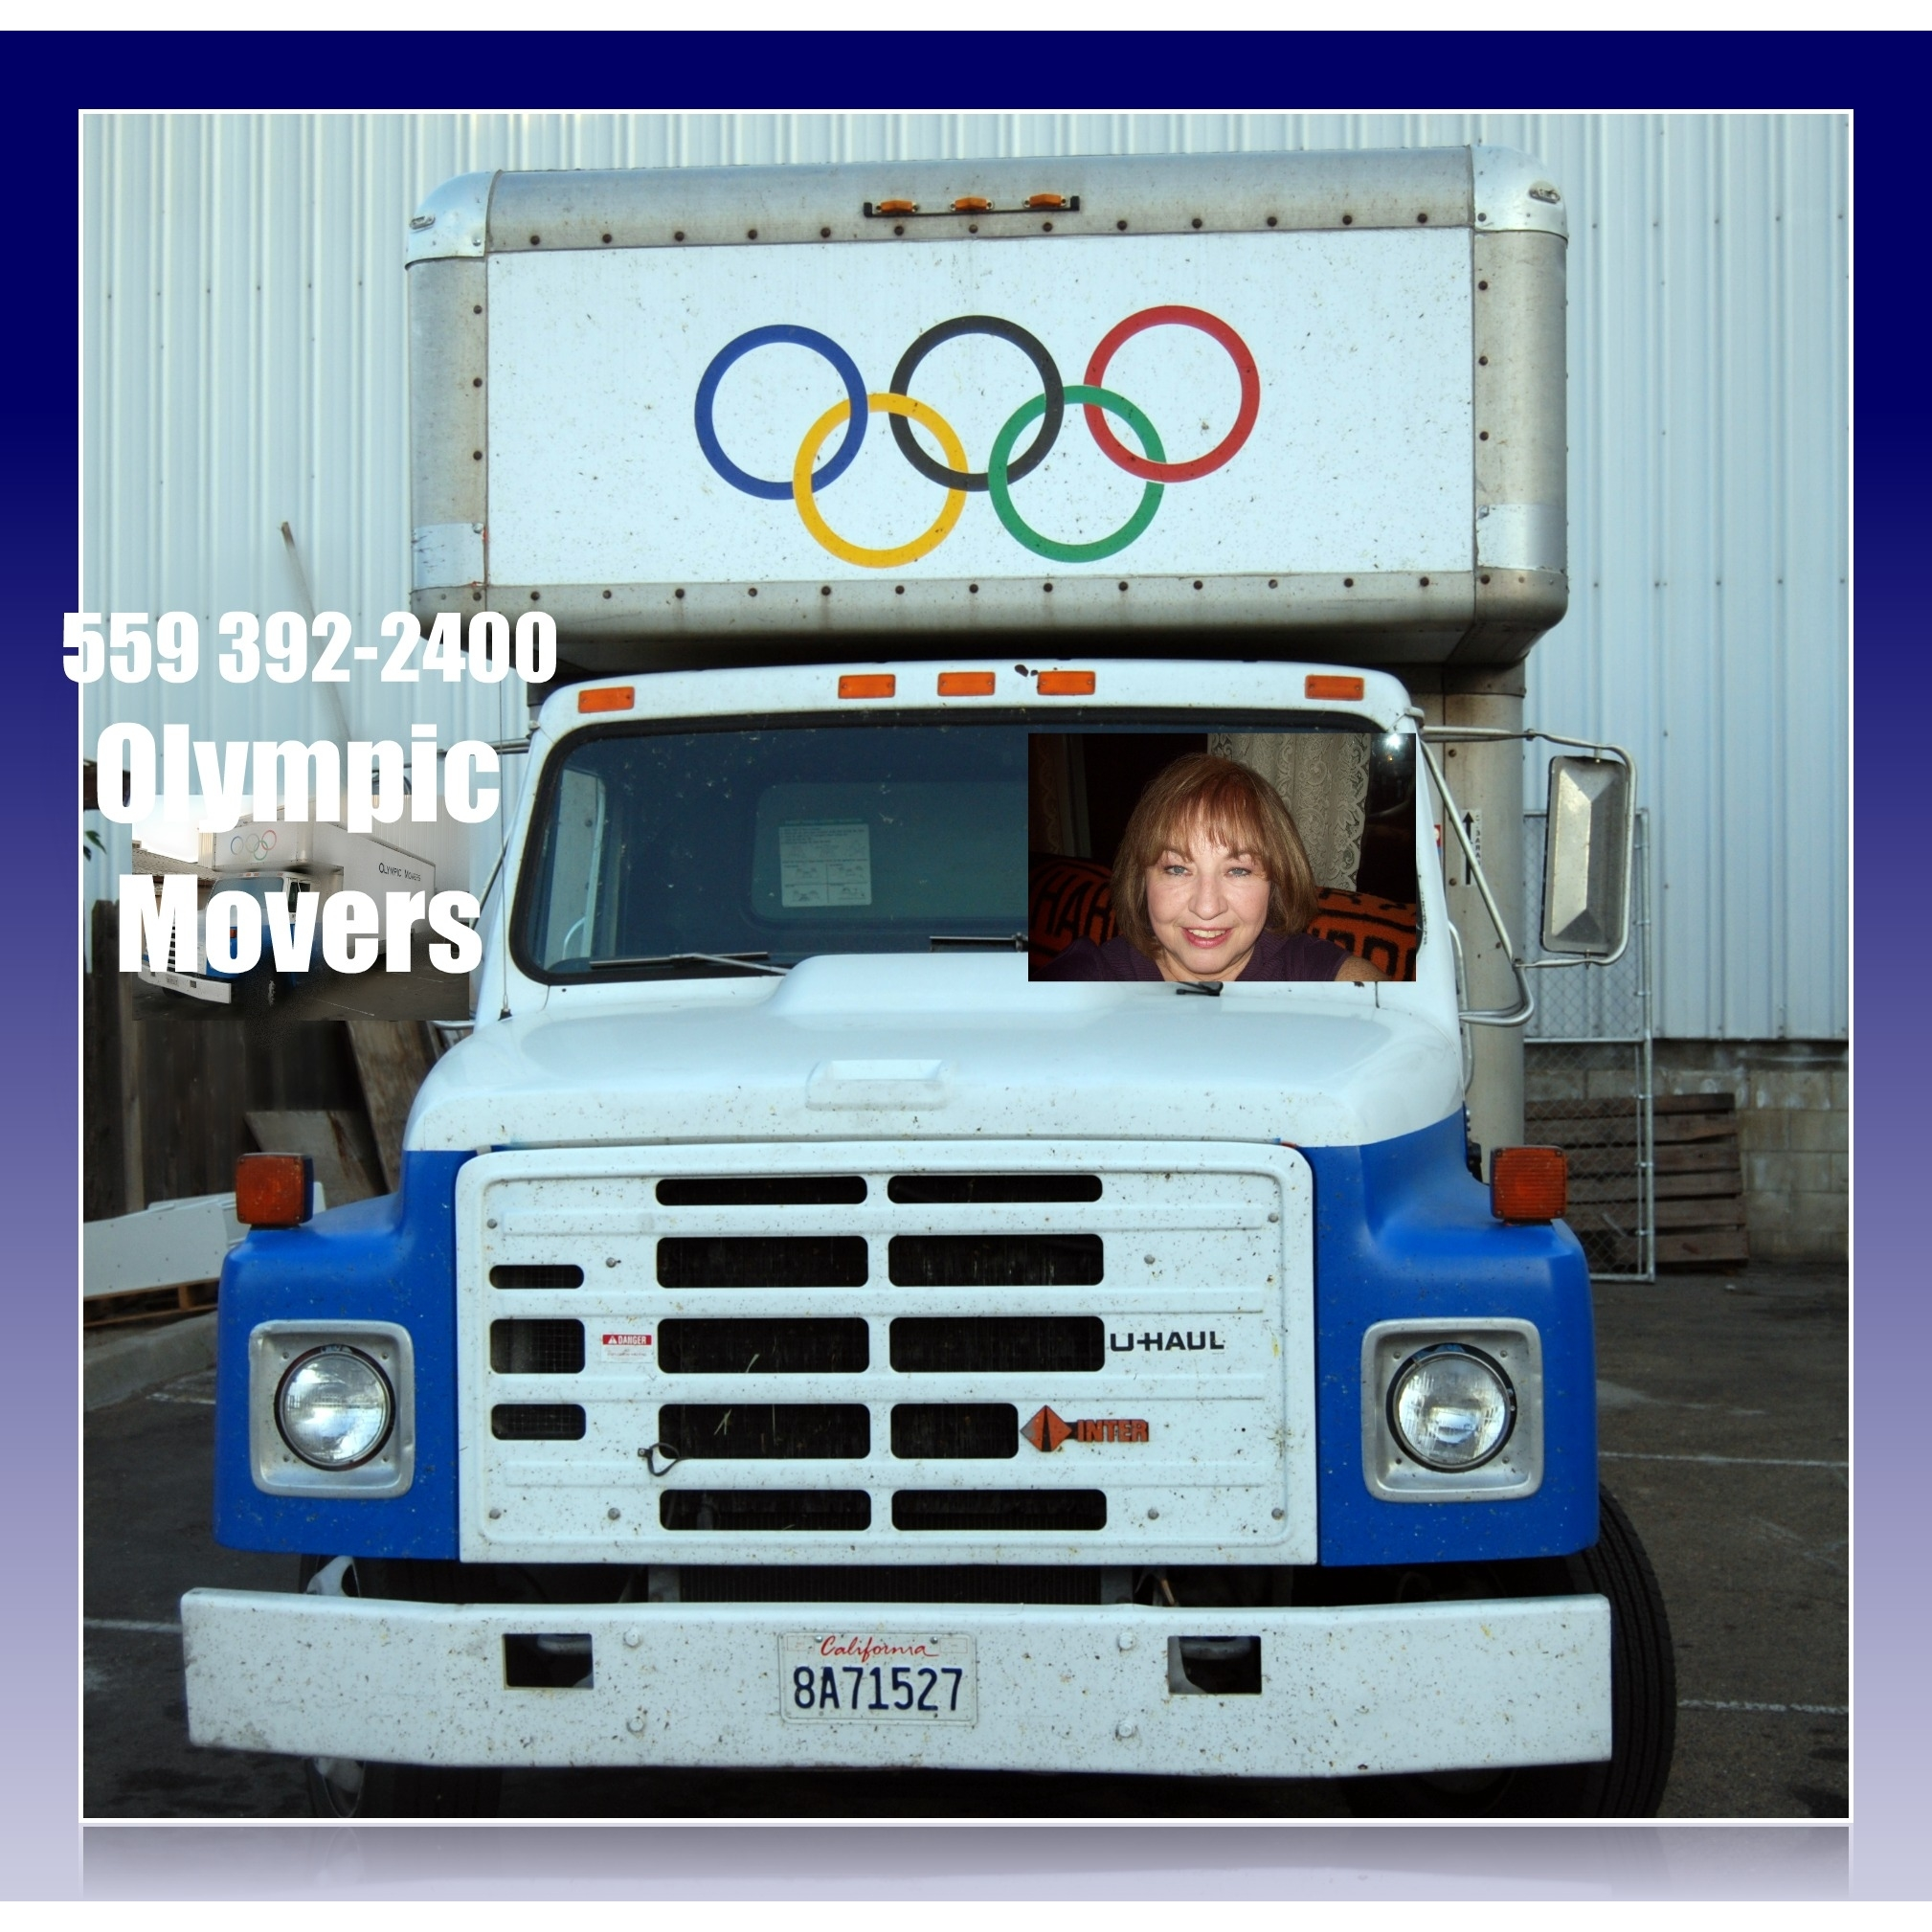 Olympic Movers Coupons near me in Clovis : 8coupons